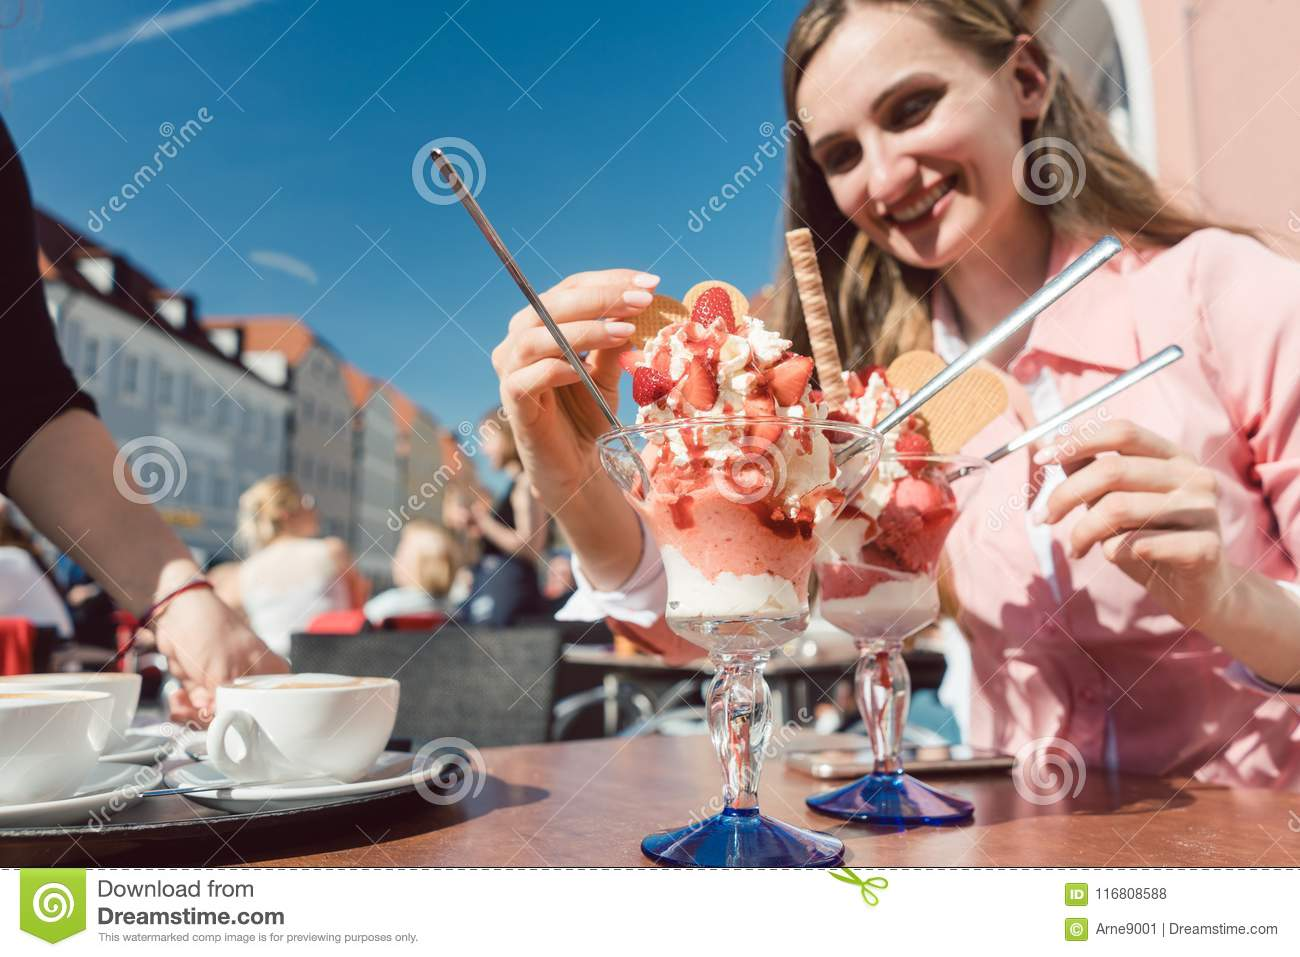 Woman enjoying her ice with strawberries